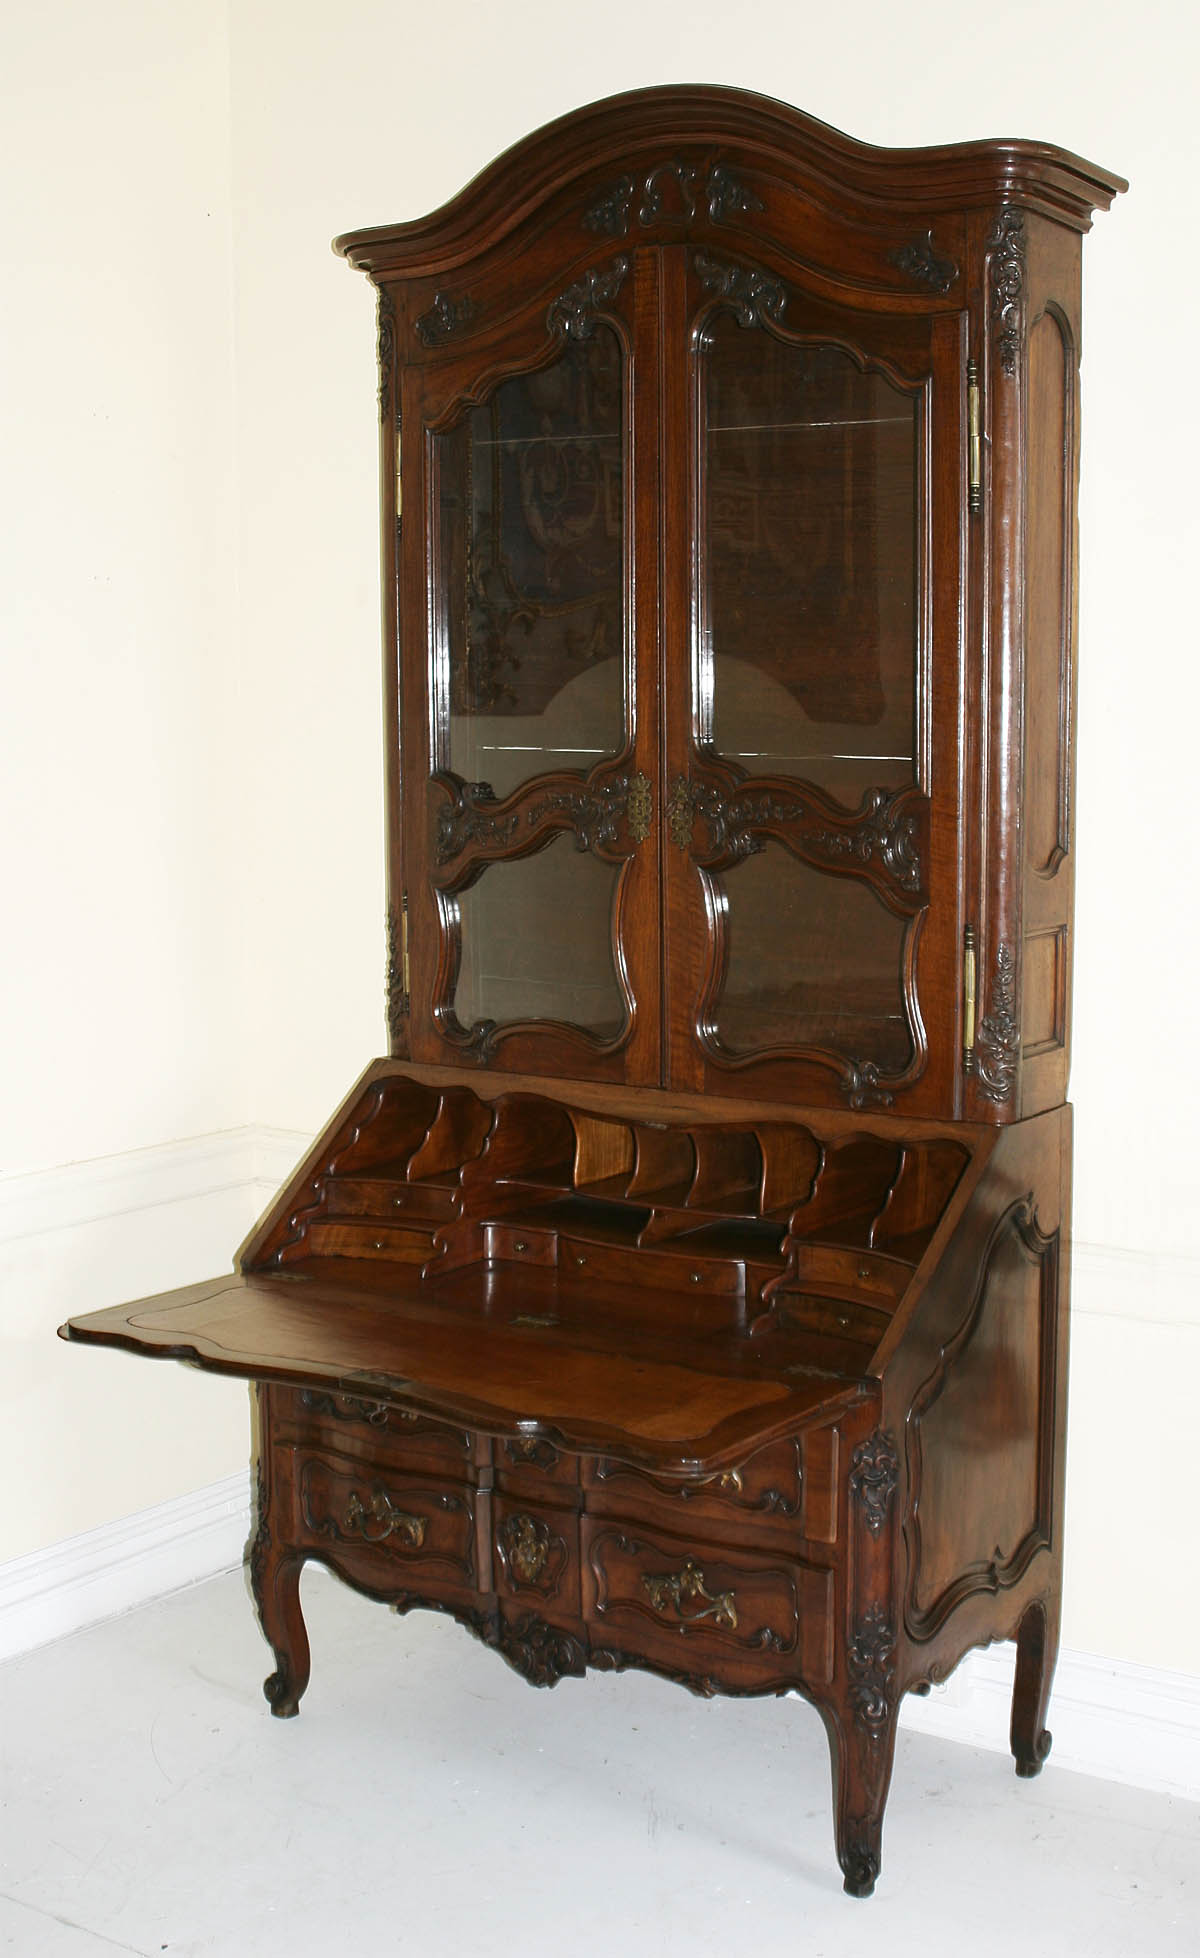 Very fine, French provincial, Regence period secretaire en bibliotheque